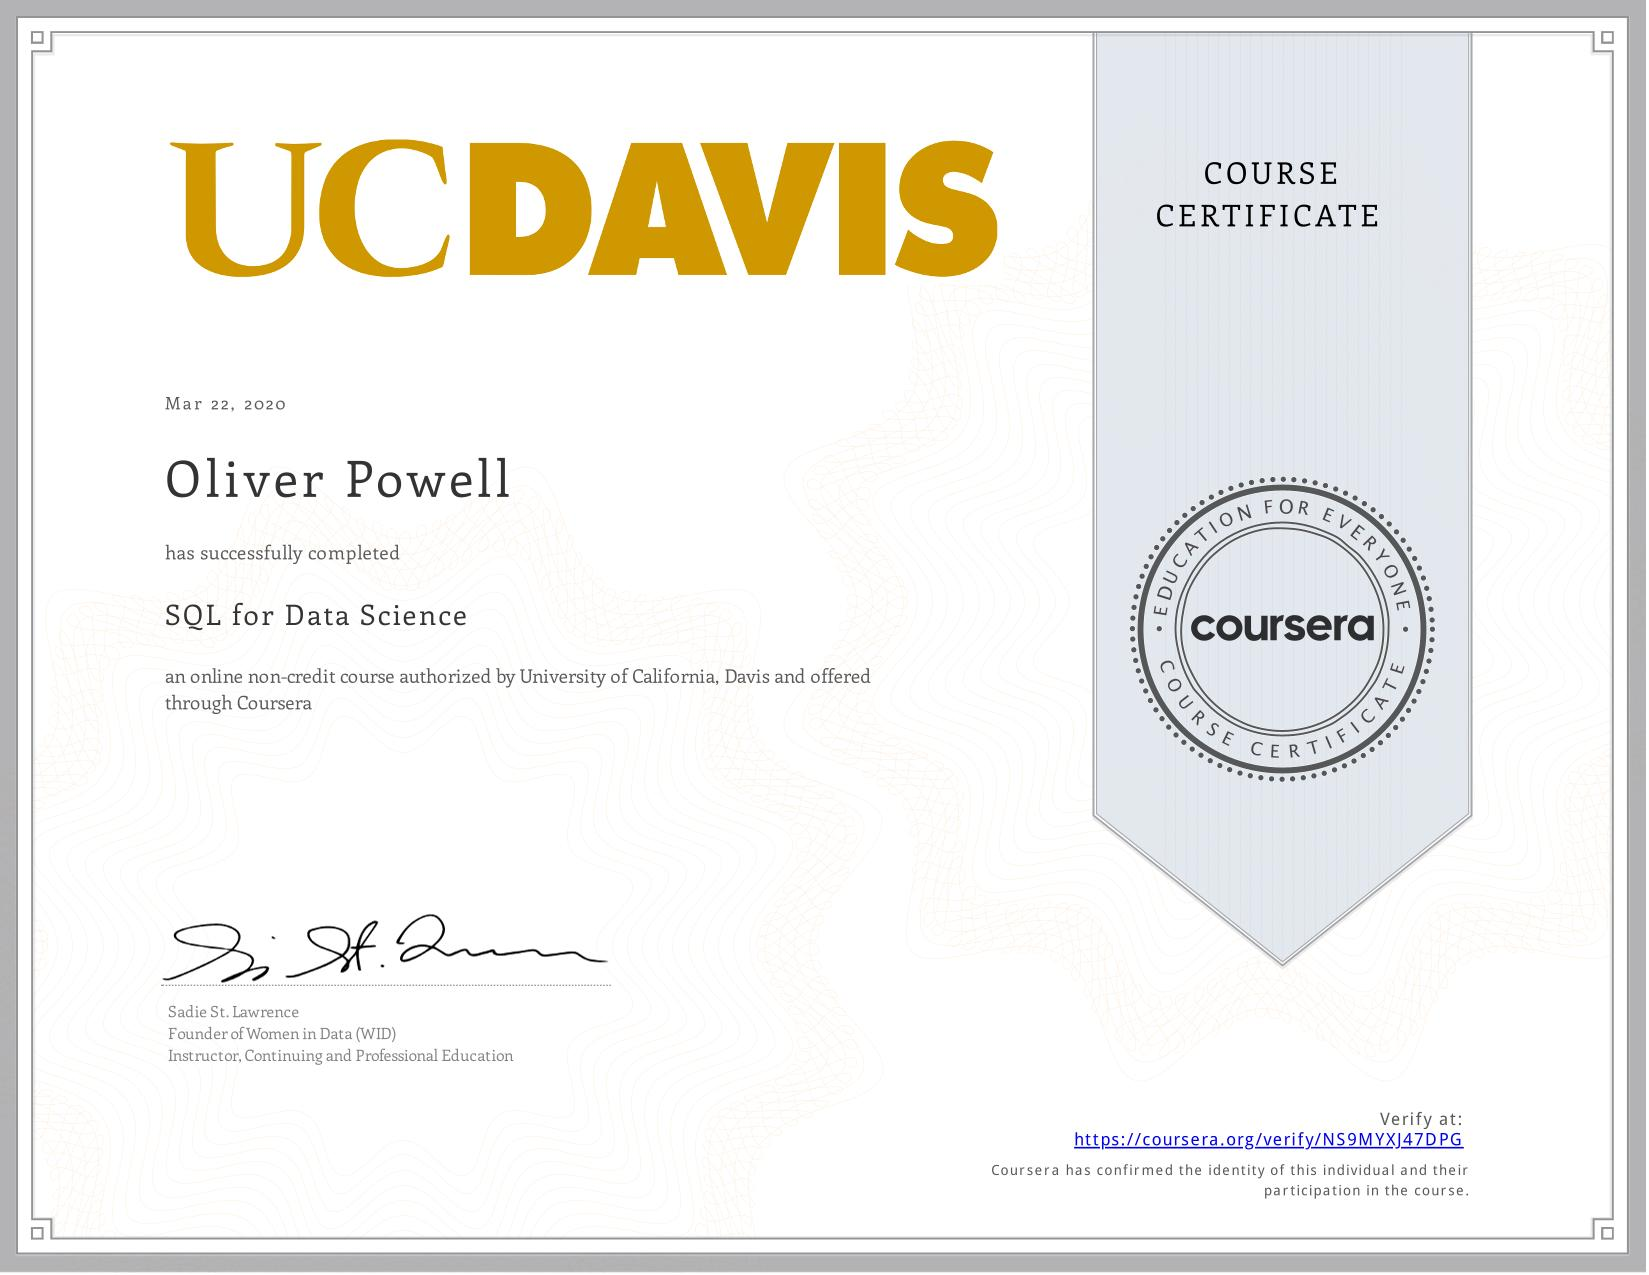 View certificate for Oliver Powell, SQL for Data Science, an online non-credit course authorized by University of California, Davis and offered through Coursera